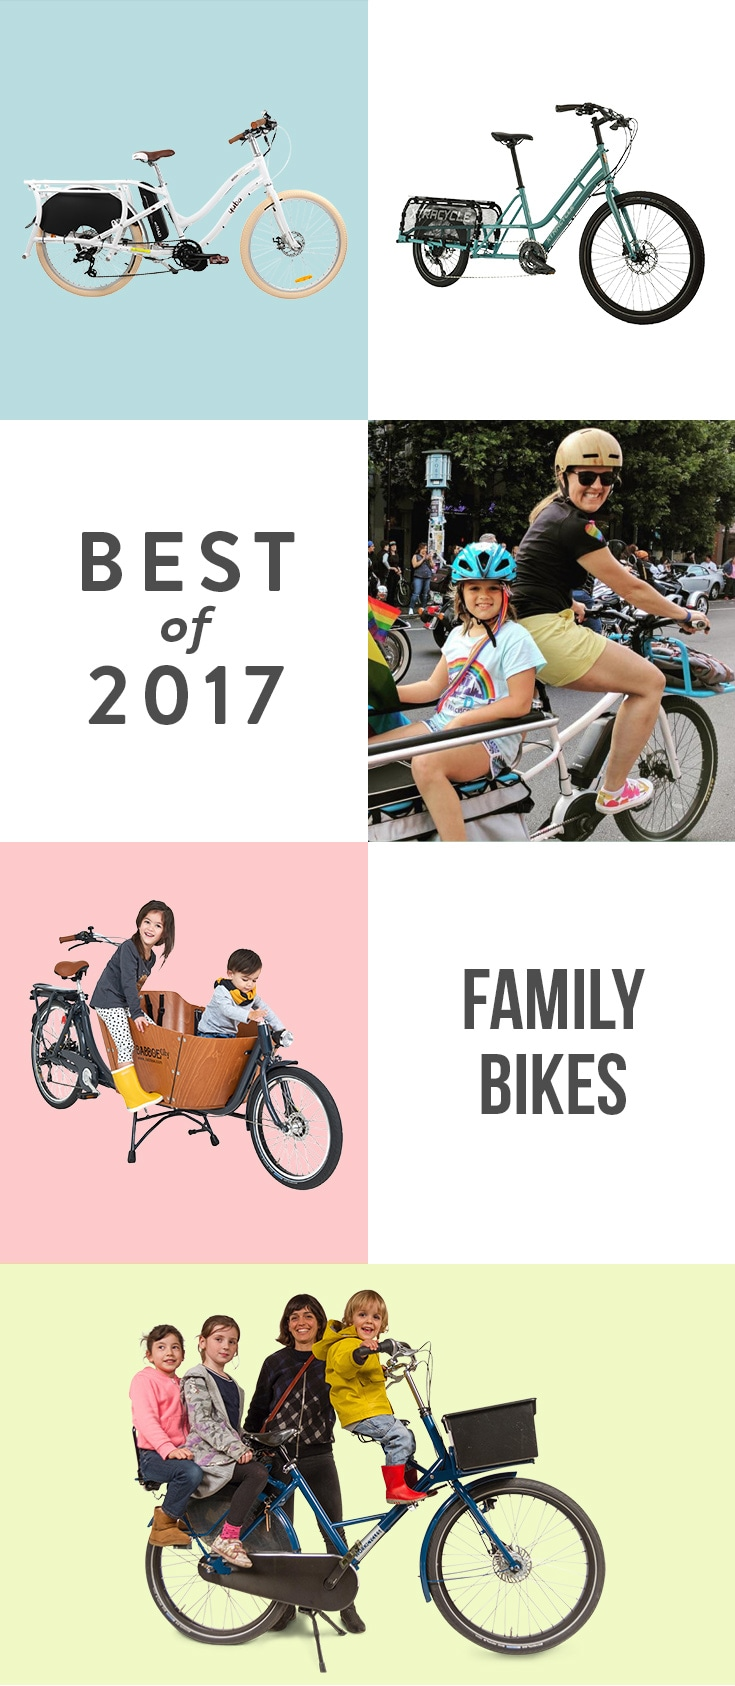 So you've mastered biking with a baby... The next step after the next kid: a family bike. It takes some practice (and strength), but riding together is one of the most fun ways to get around town.